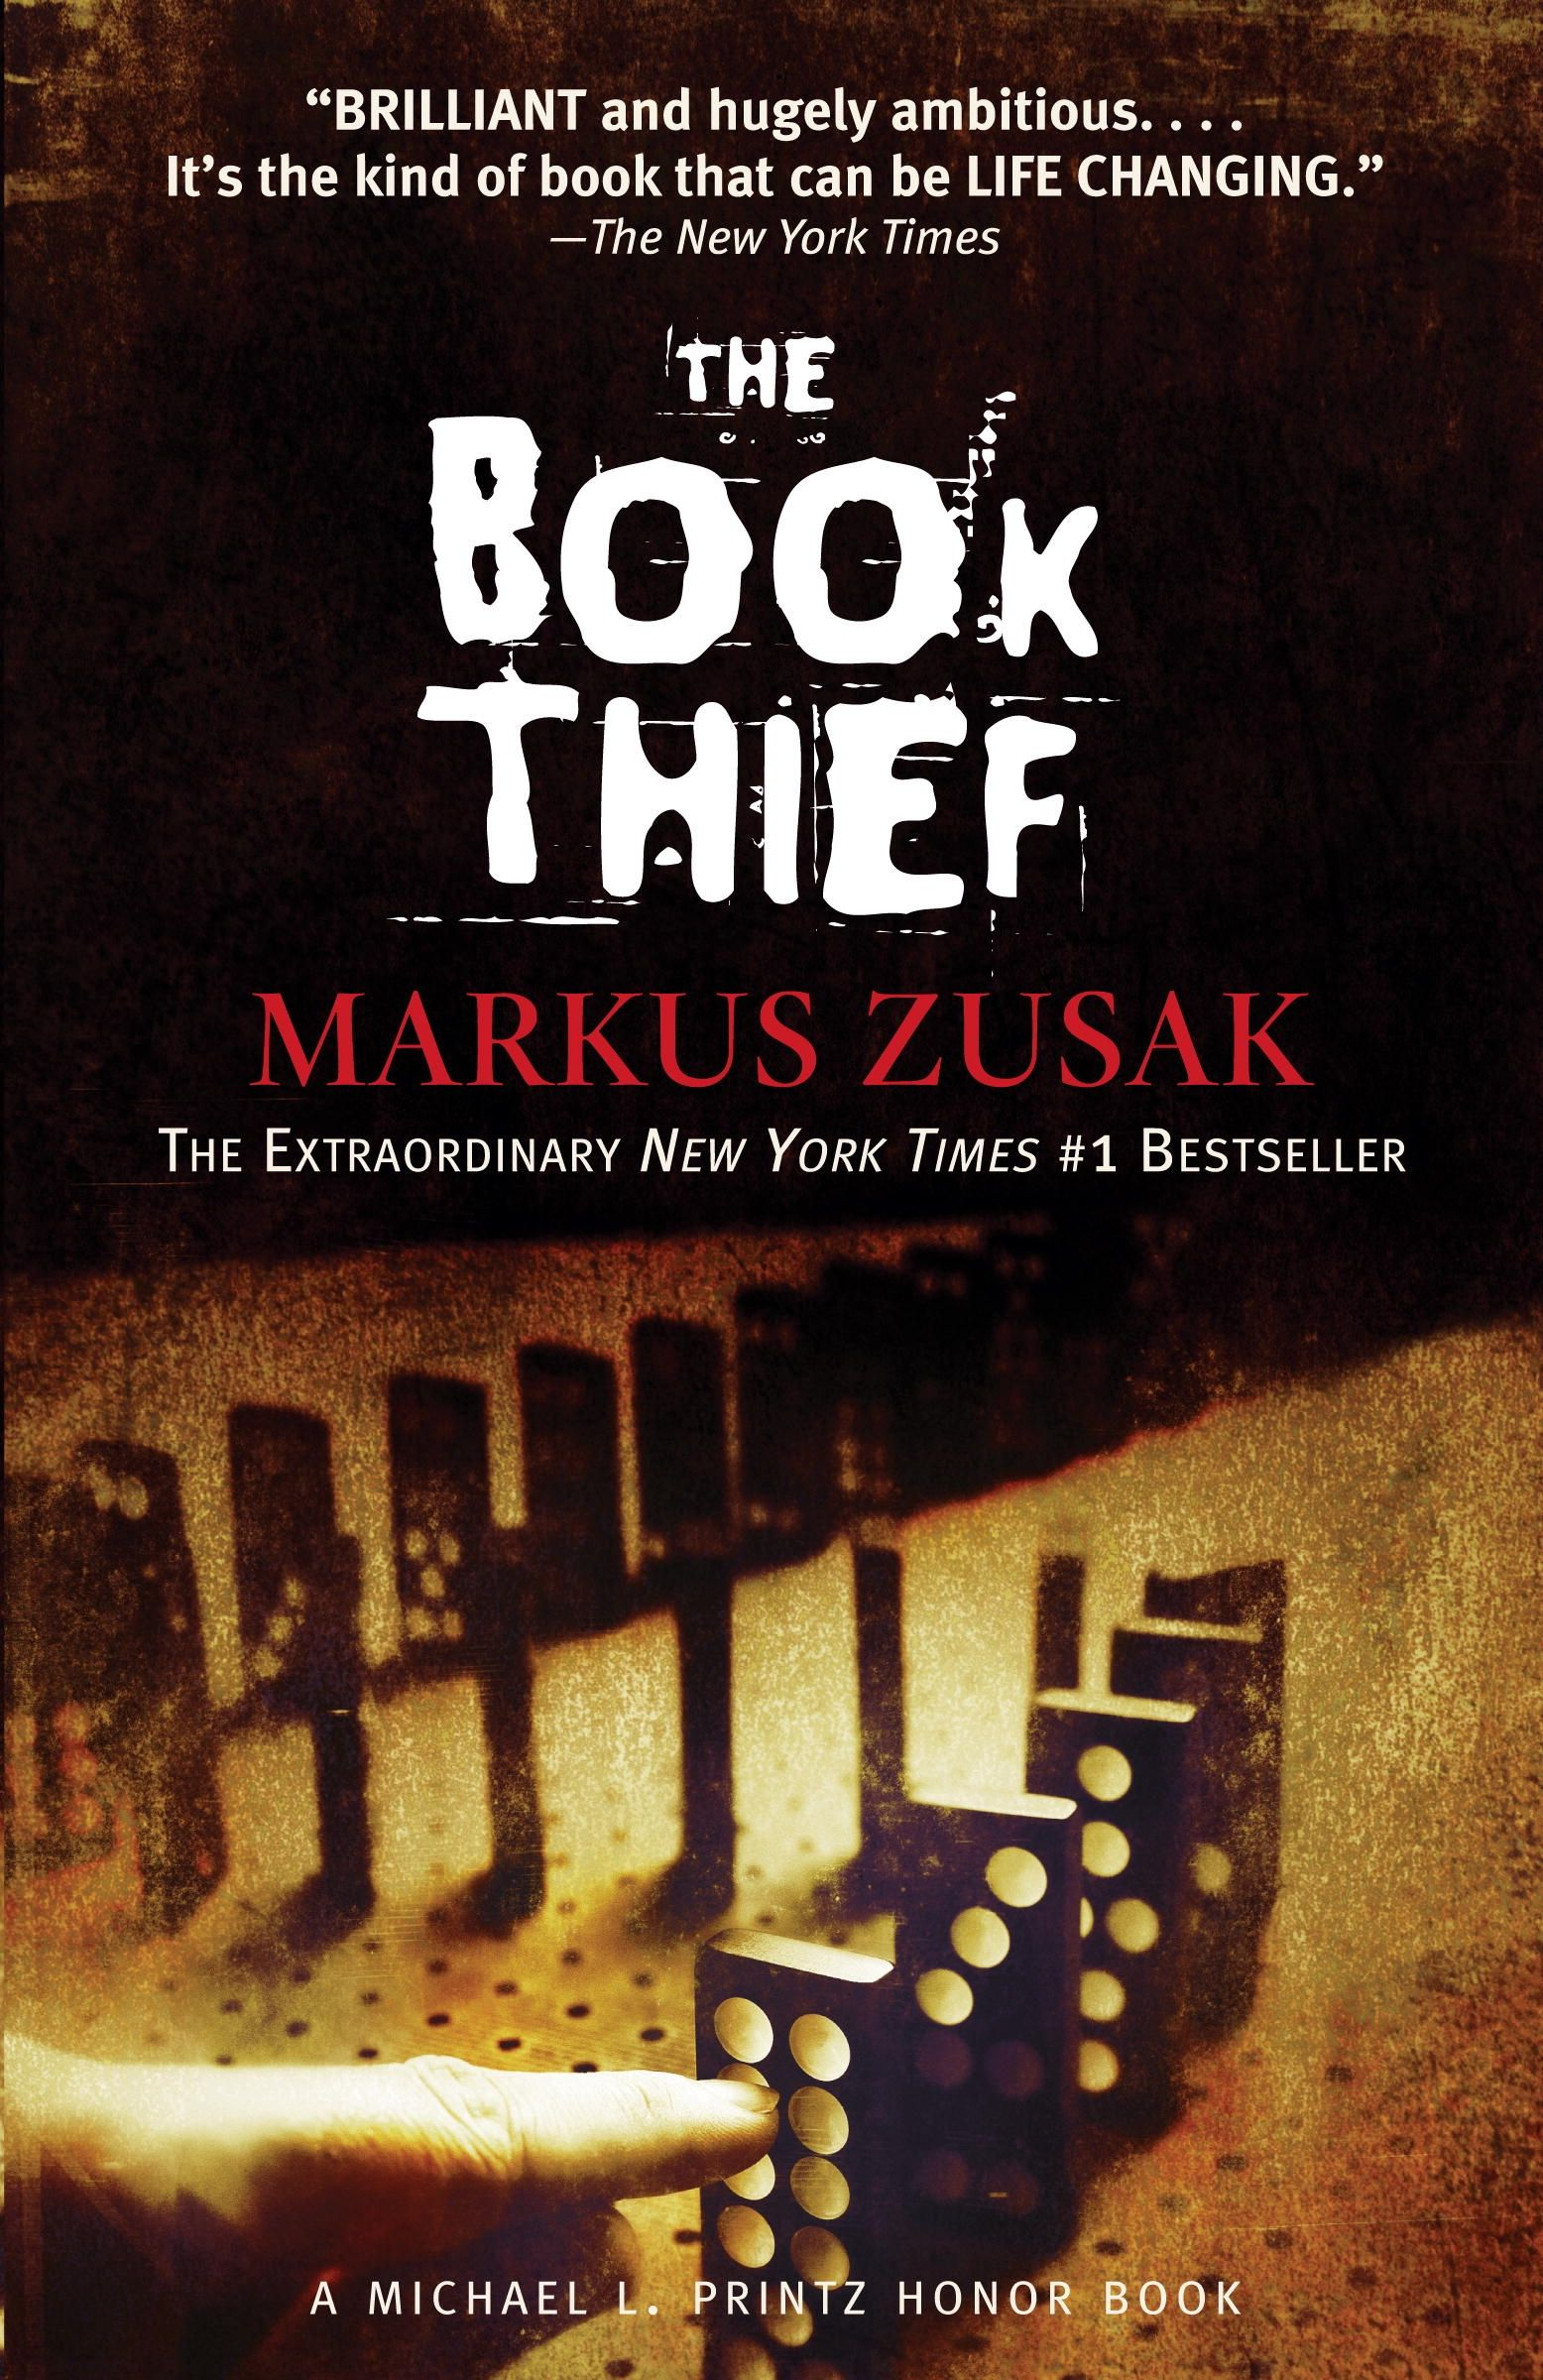 Enjoy The Book Thief while relaxing in the bathtub. This novel, written by Markus Zusak, was made into a major motion picture starring Sophie Nelisse and Geoffrey Rush. The book is a #1 New York Times bestseller and an excellent read for young adults and adults alike.